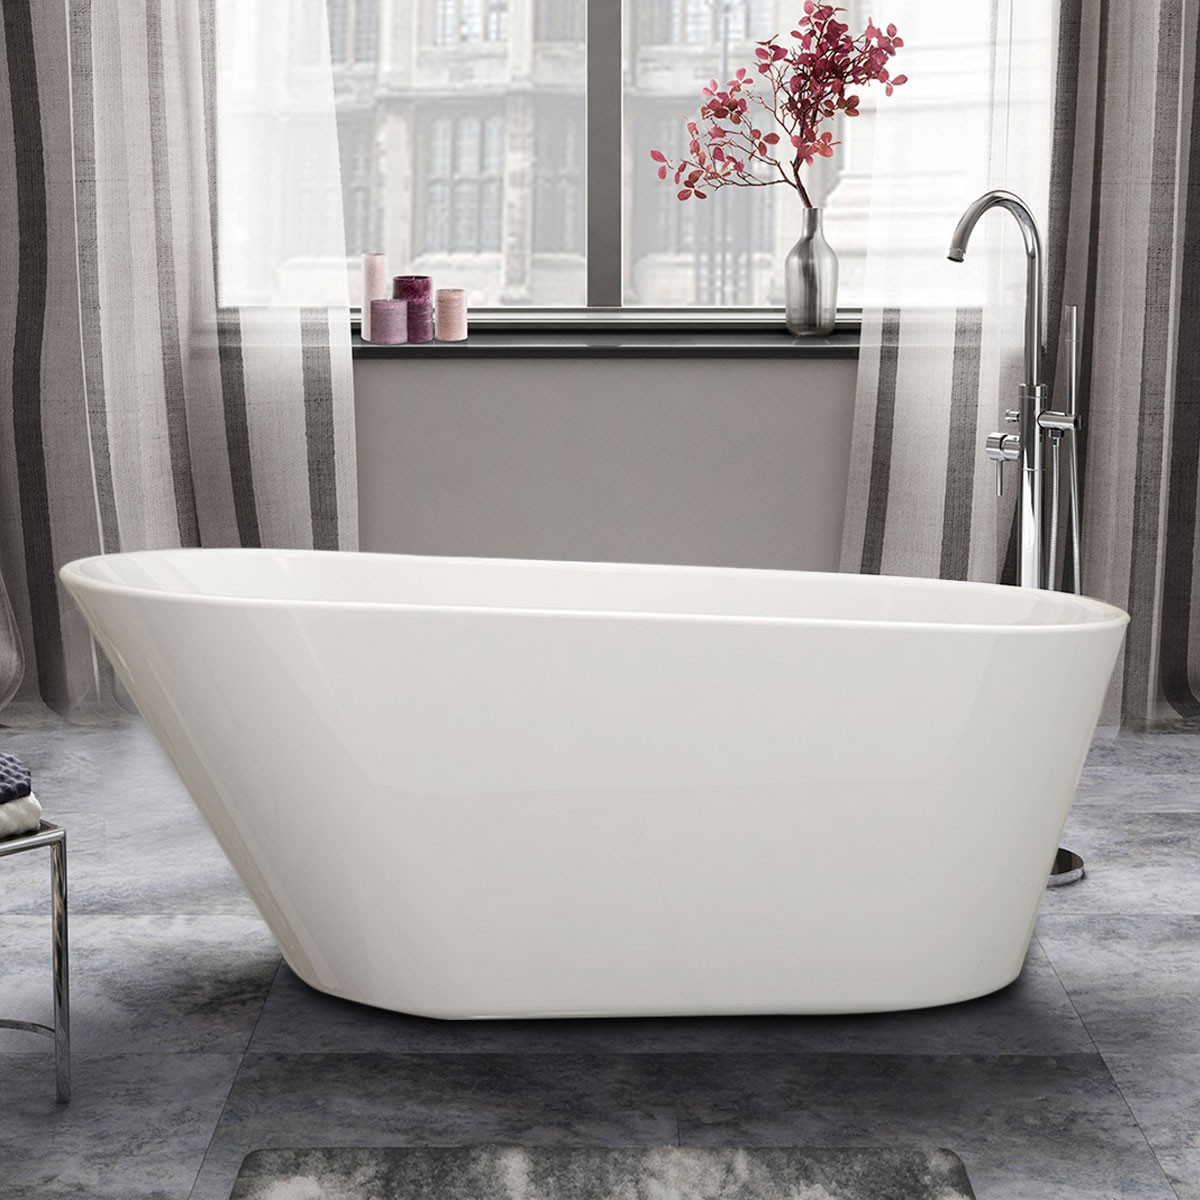 61 In Seamless White Acrylic Freestanding Bathtub (DK-1506B)